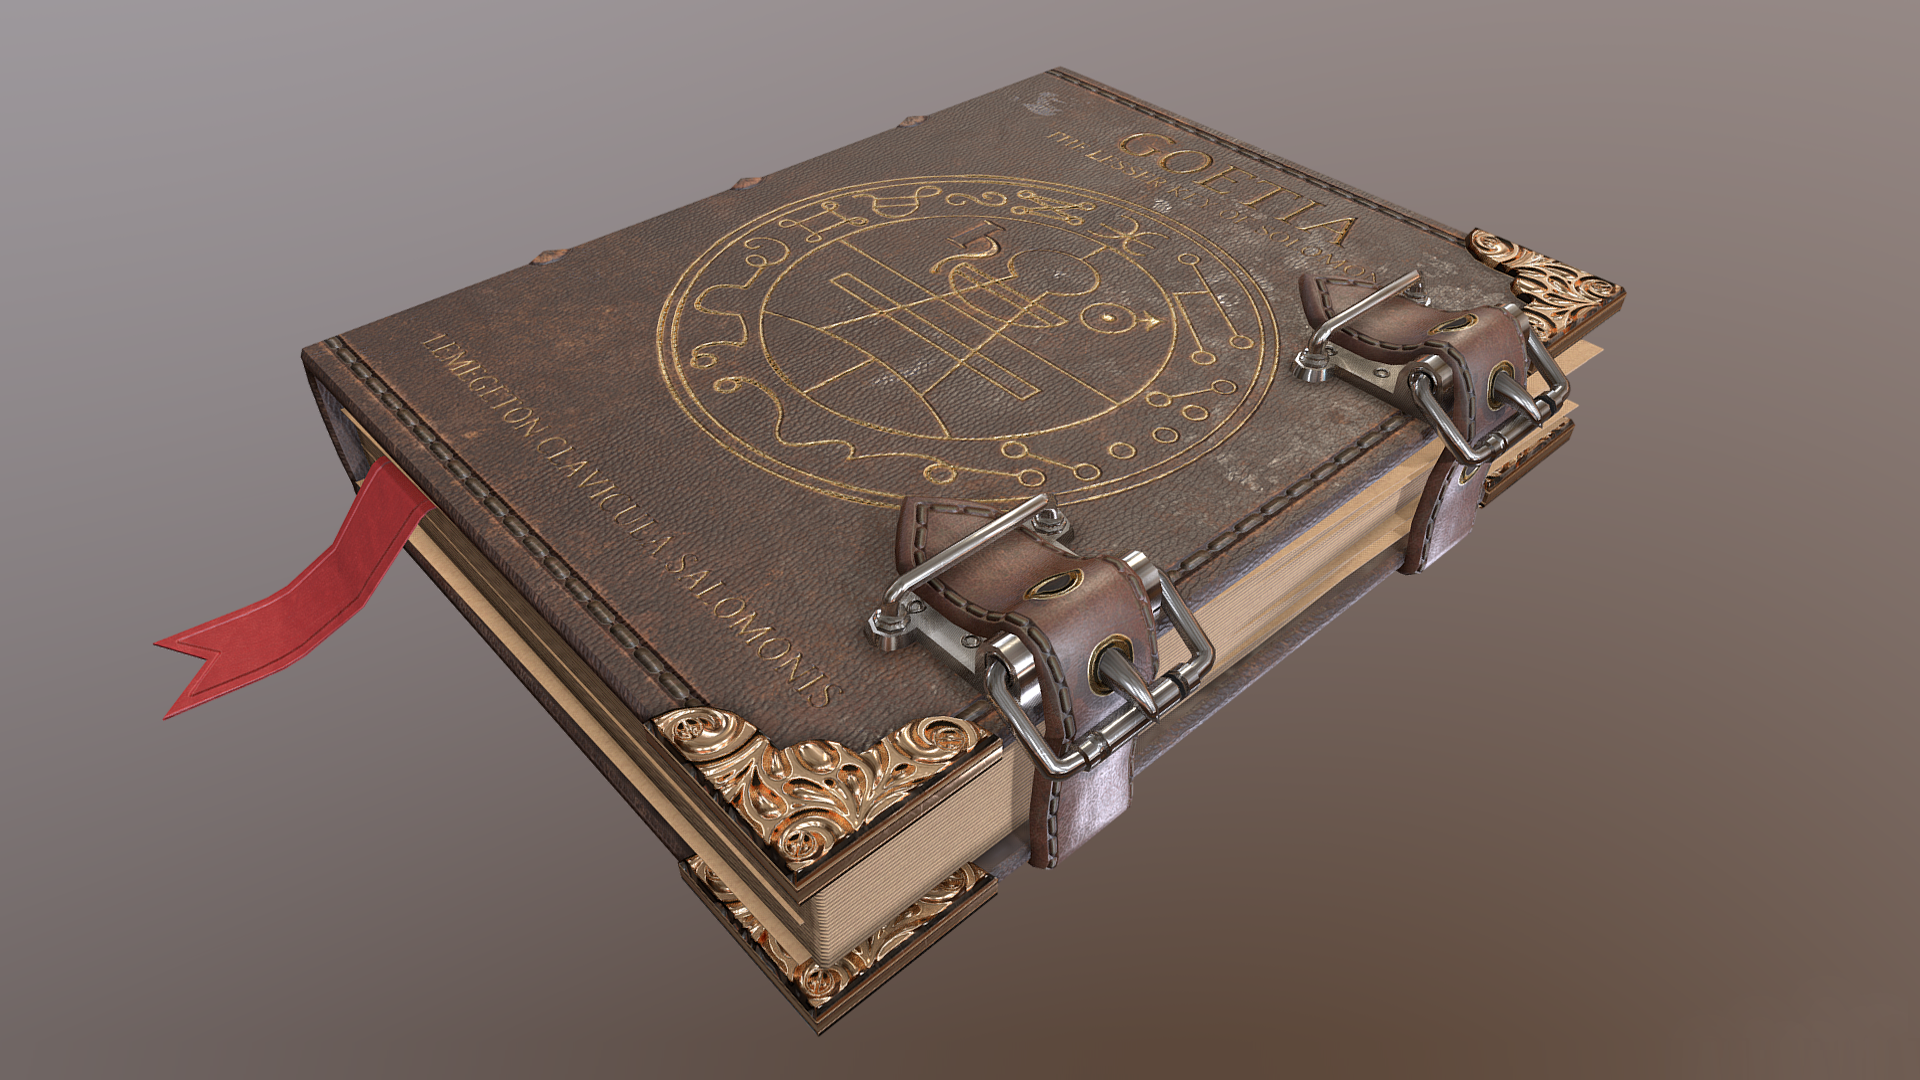 2018 Grimoire Material Study